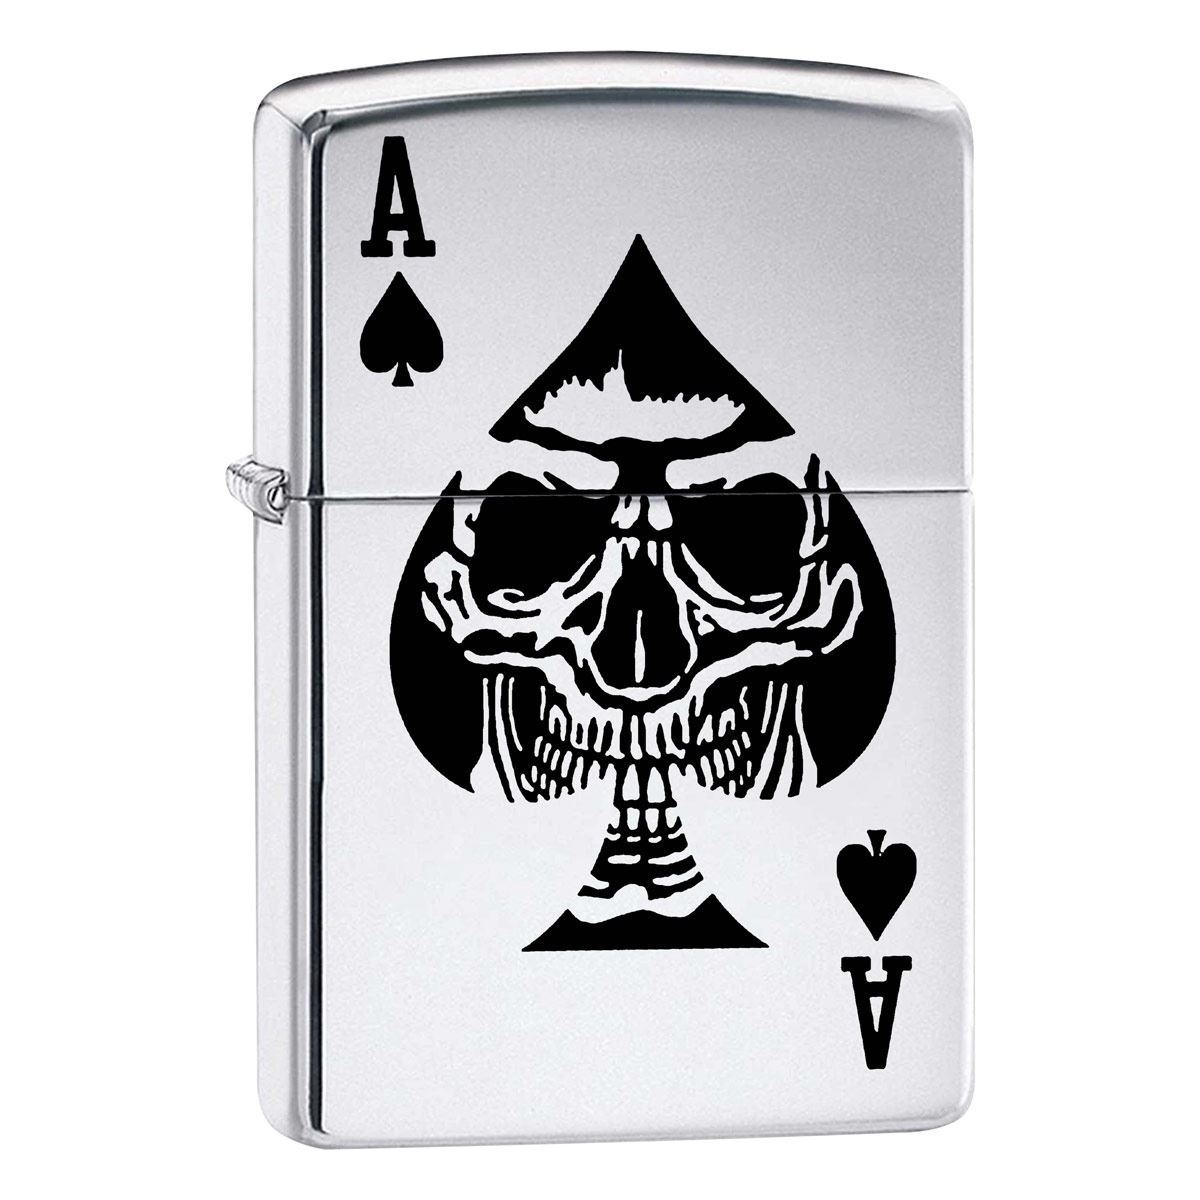 Encendedor ZIPPO Fall Price Fighter As Negro Calavera